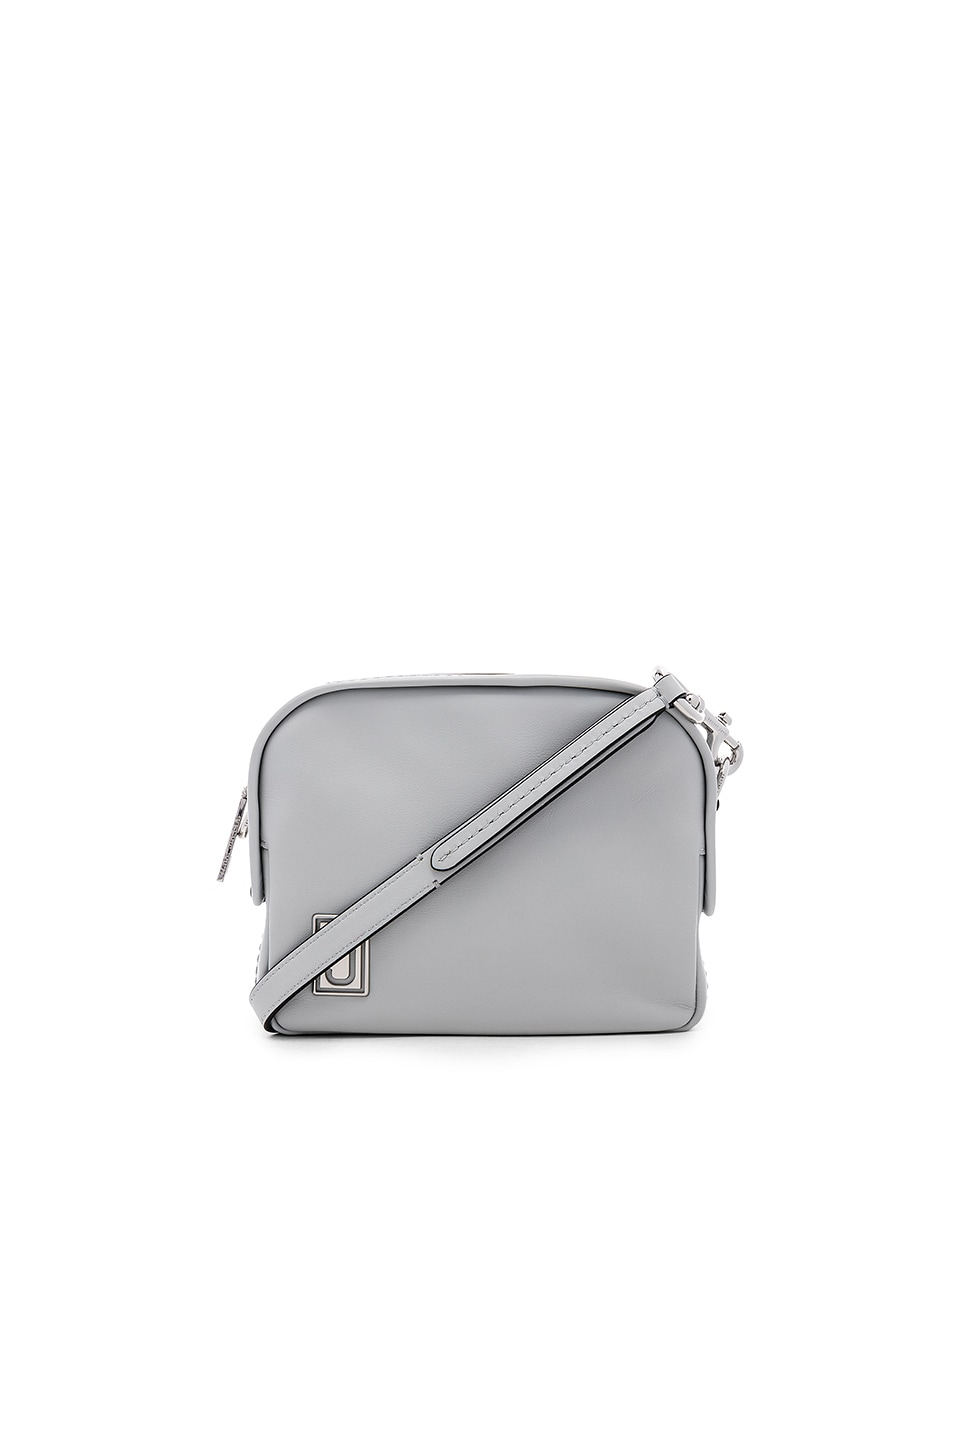 The Mini Squeeze Crossbody